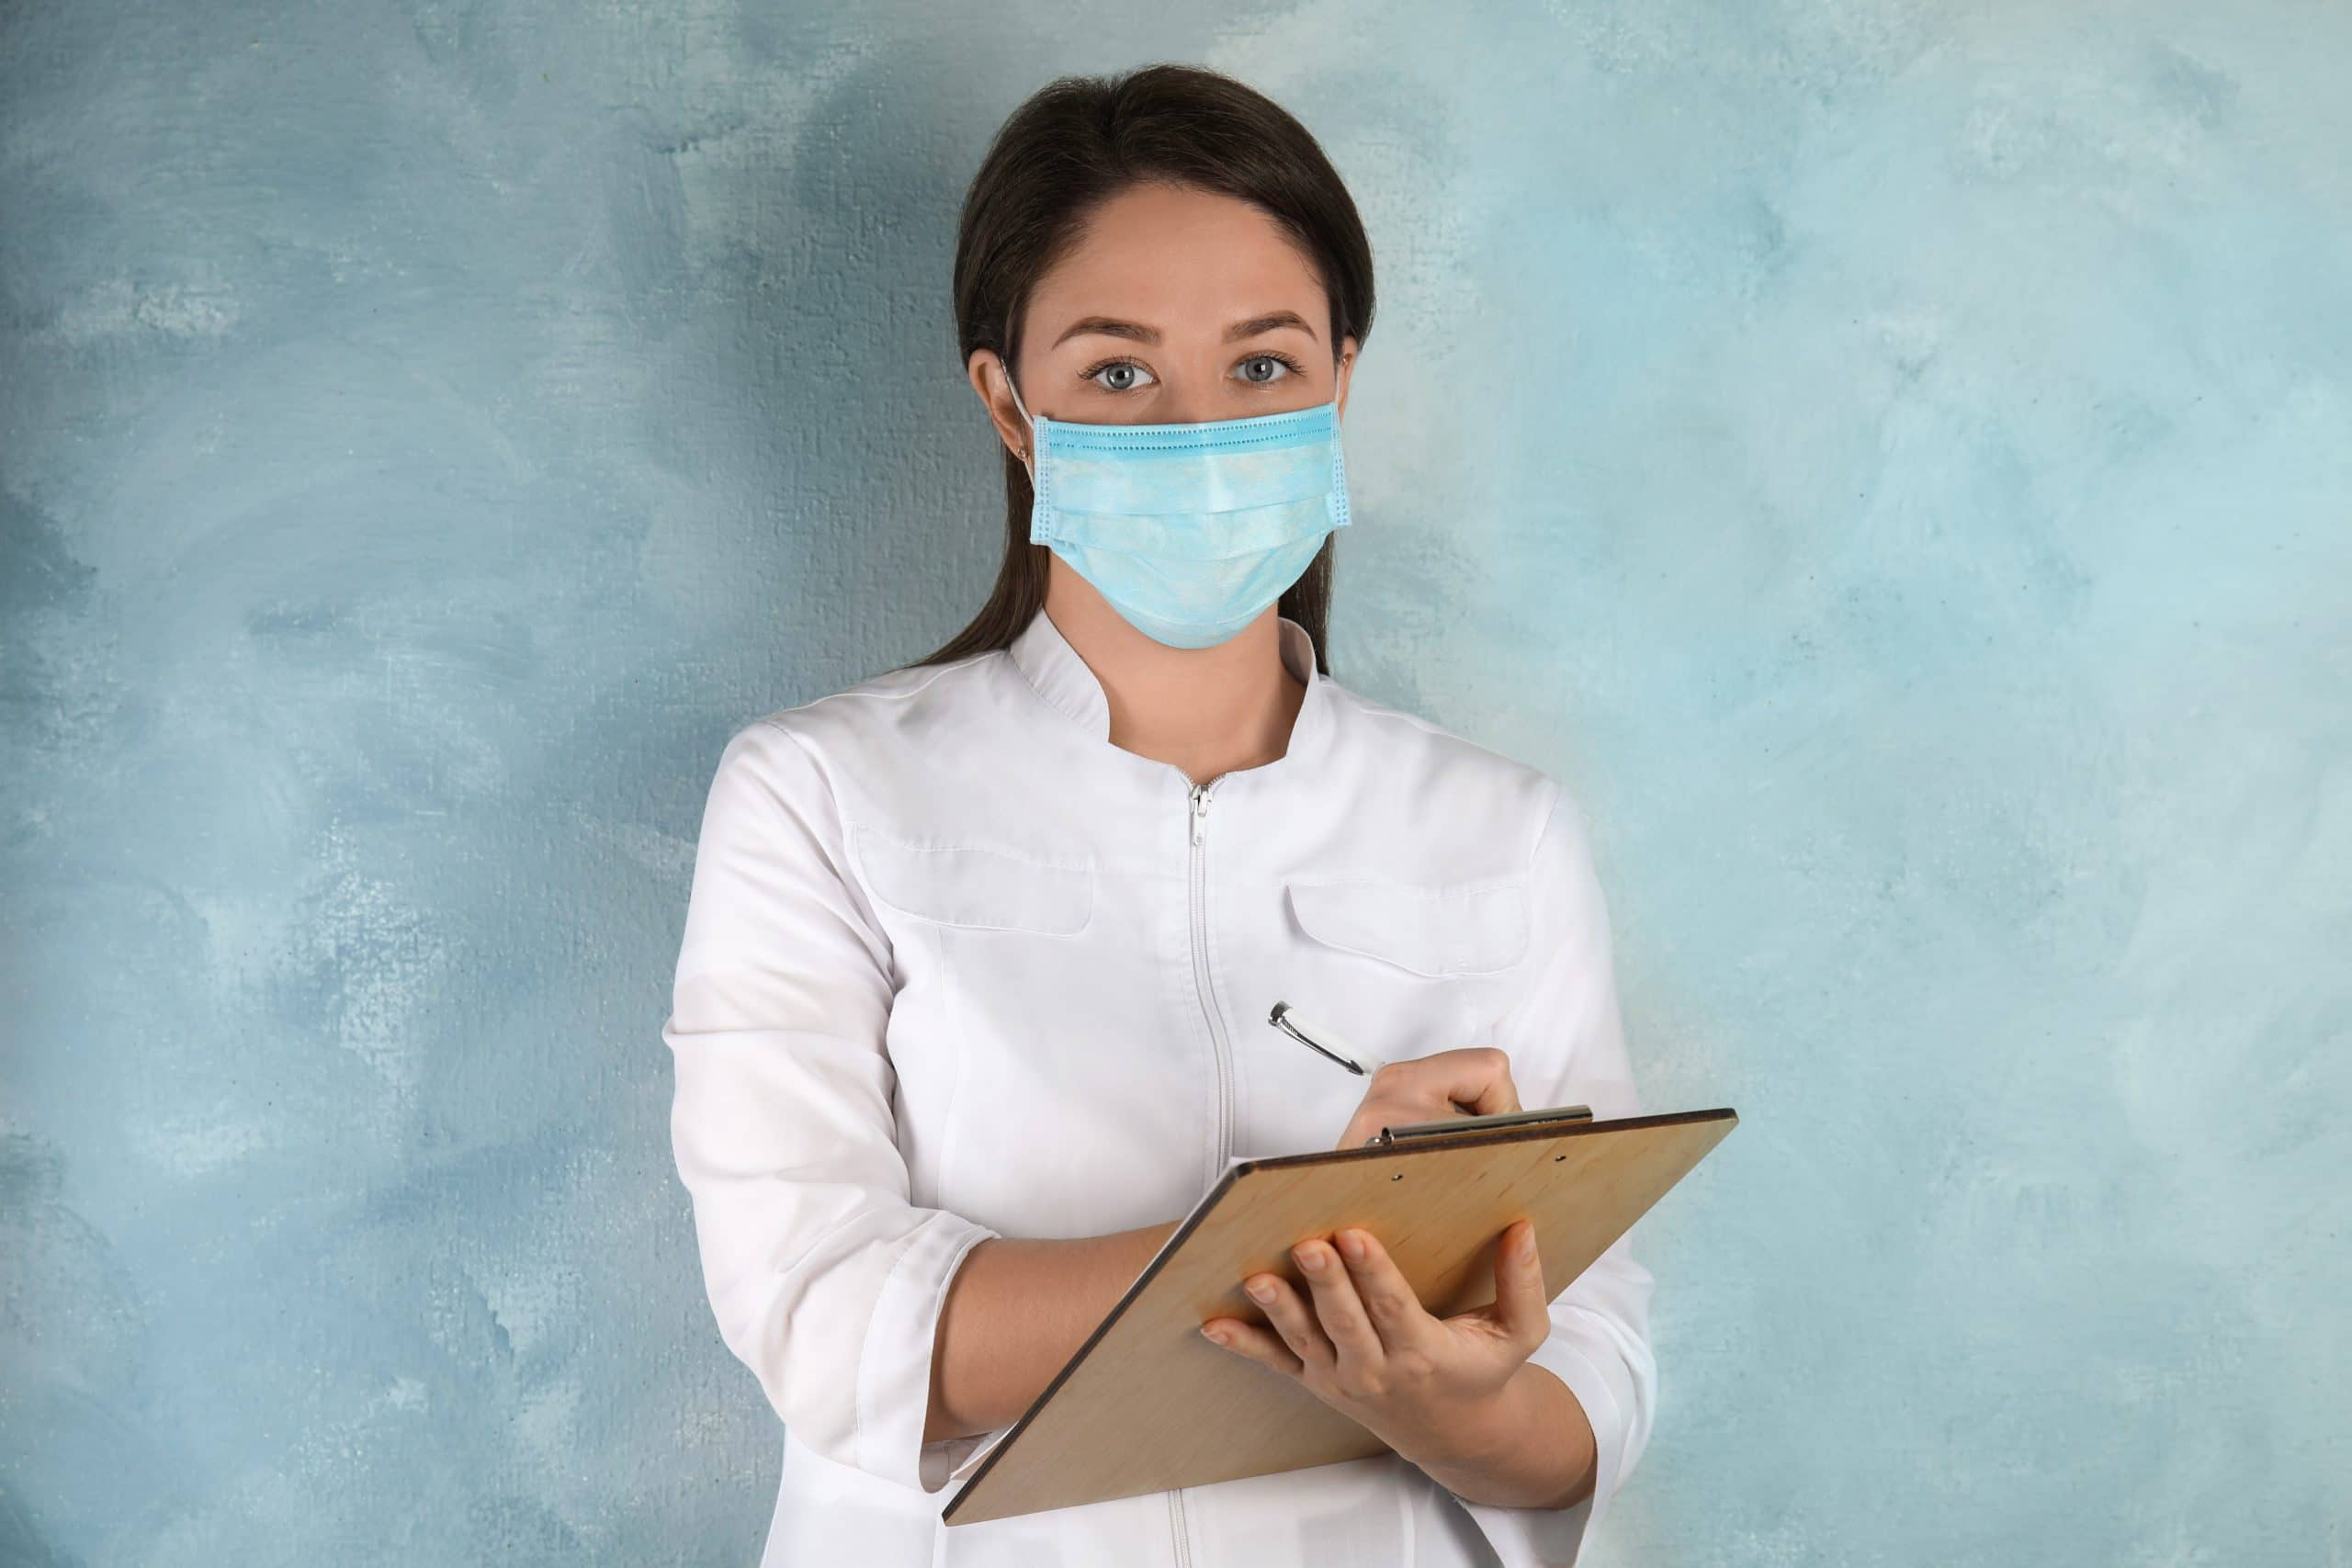 A doctor working in a long term care facility wears a disposable mask and takes notes on a clipboard.Behind her is a light blue wall.